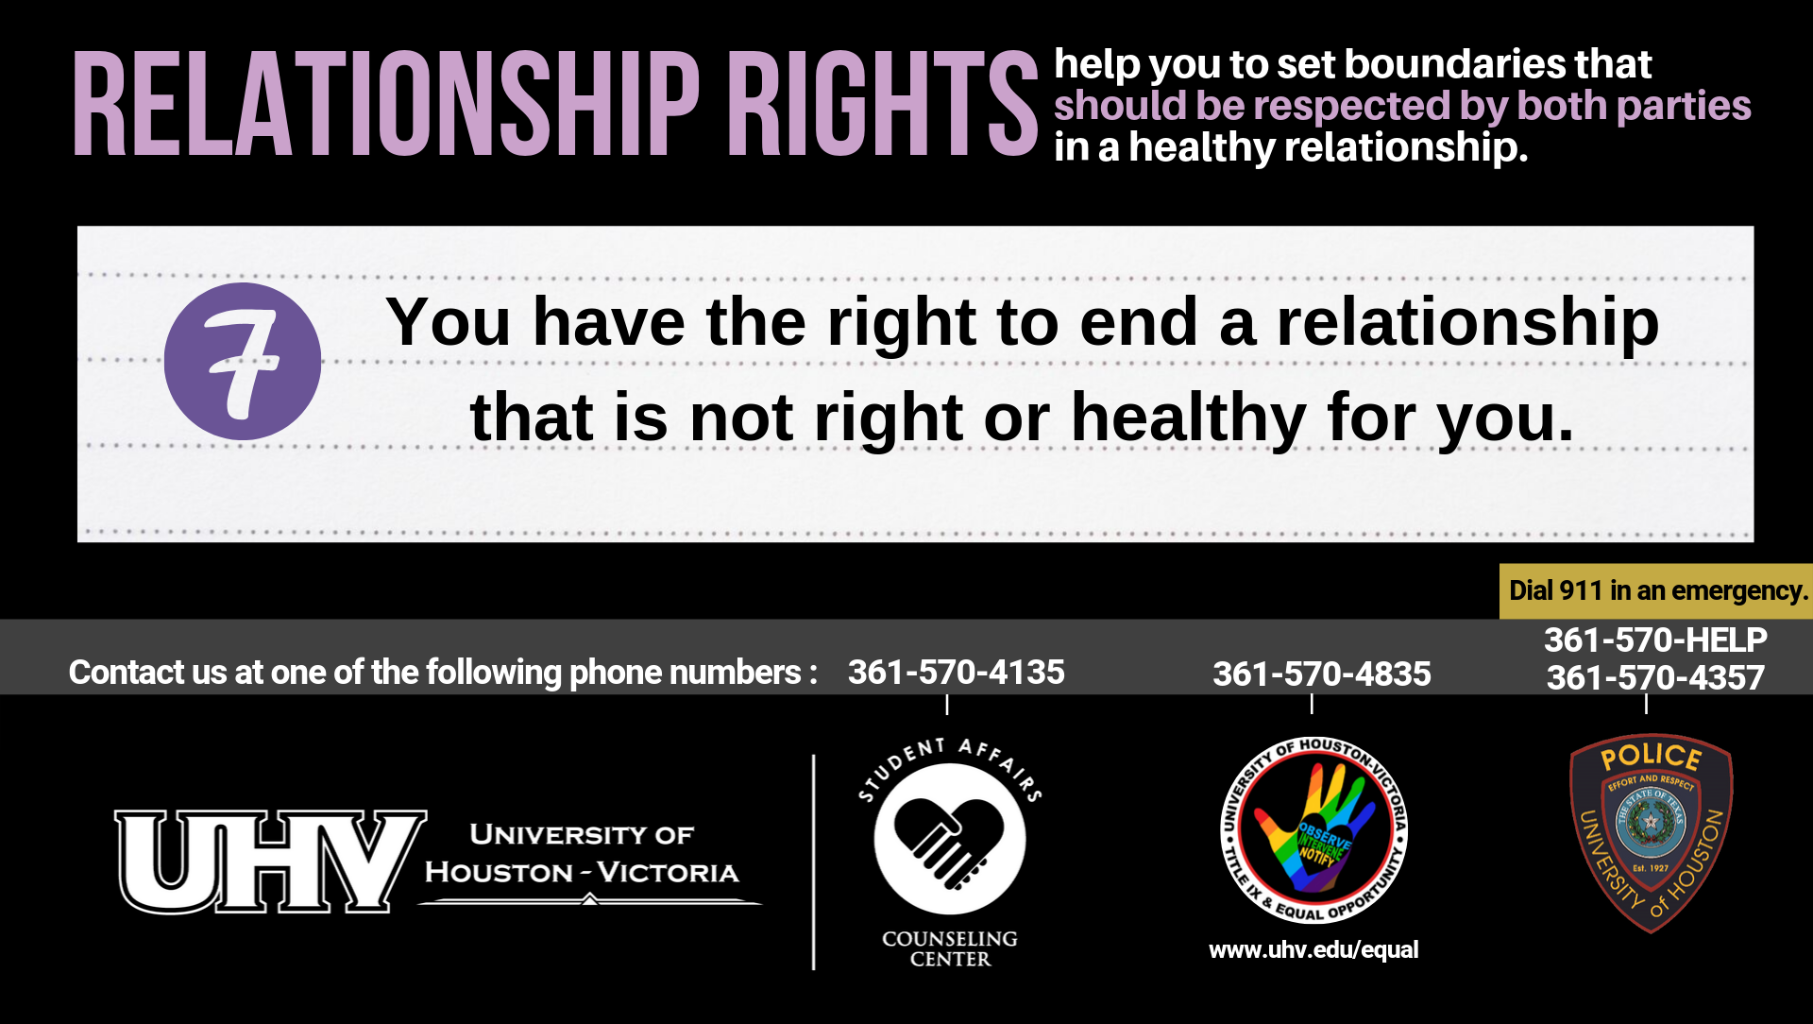 Relationship Rights help you to set boundaries that should be respected by both parties in a healthy relationship. 7. You have the right to end a relationship that is not right or healthy for you. University of Houston-Victoria Title IX and Equal Opportunity Logo (rainbow hand with heart insert with words Observe, Intervene, Notify).